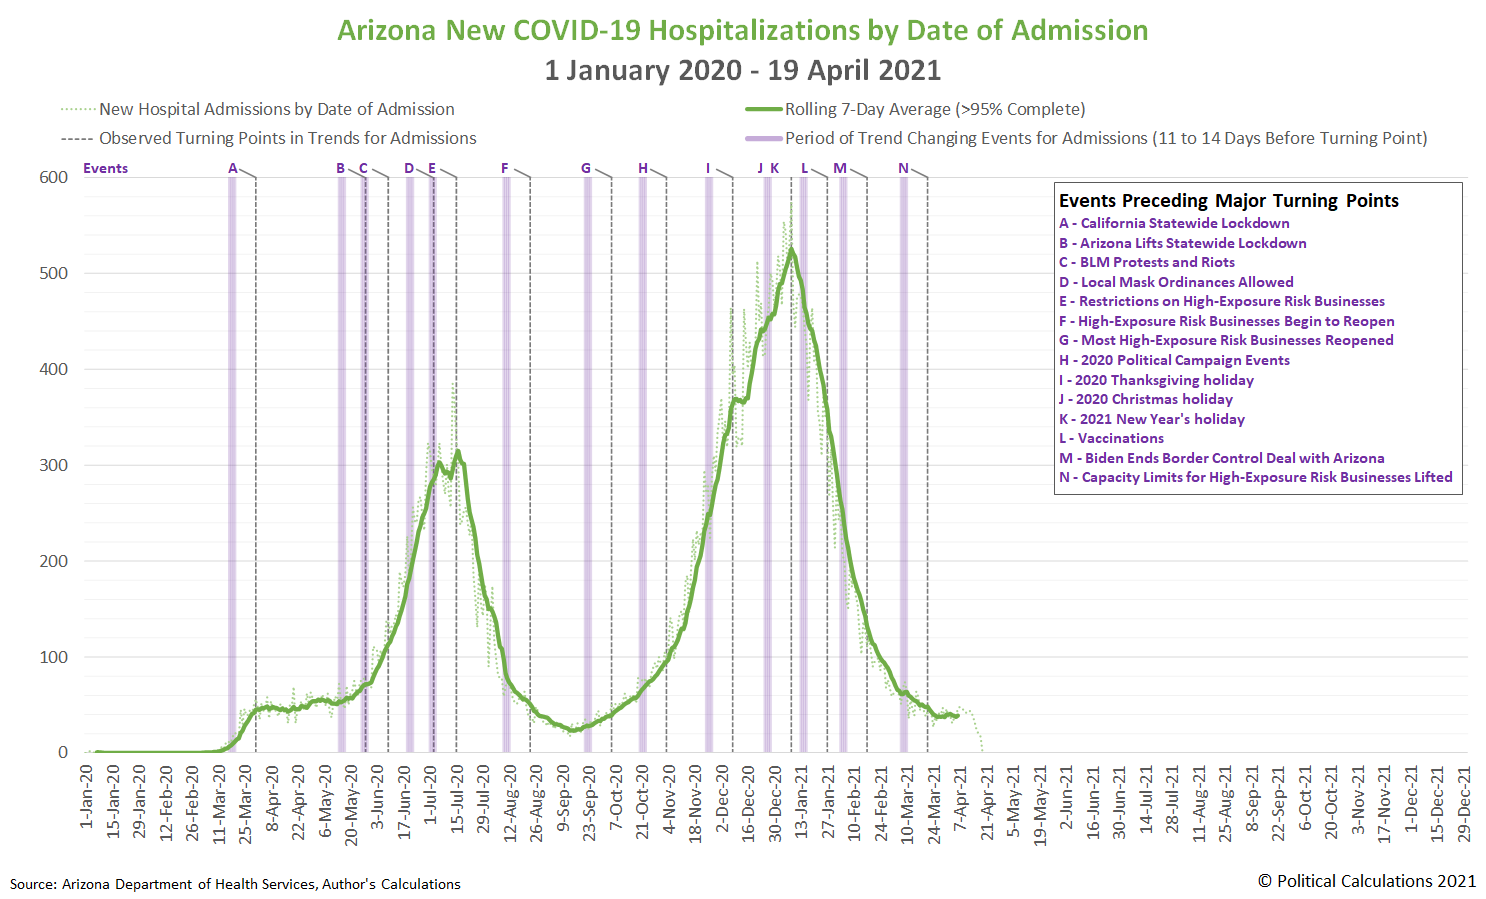 Arizona New COVID-19 Hospitalizations by Date of Admission, 1 January 2020 - 19 April 2021